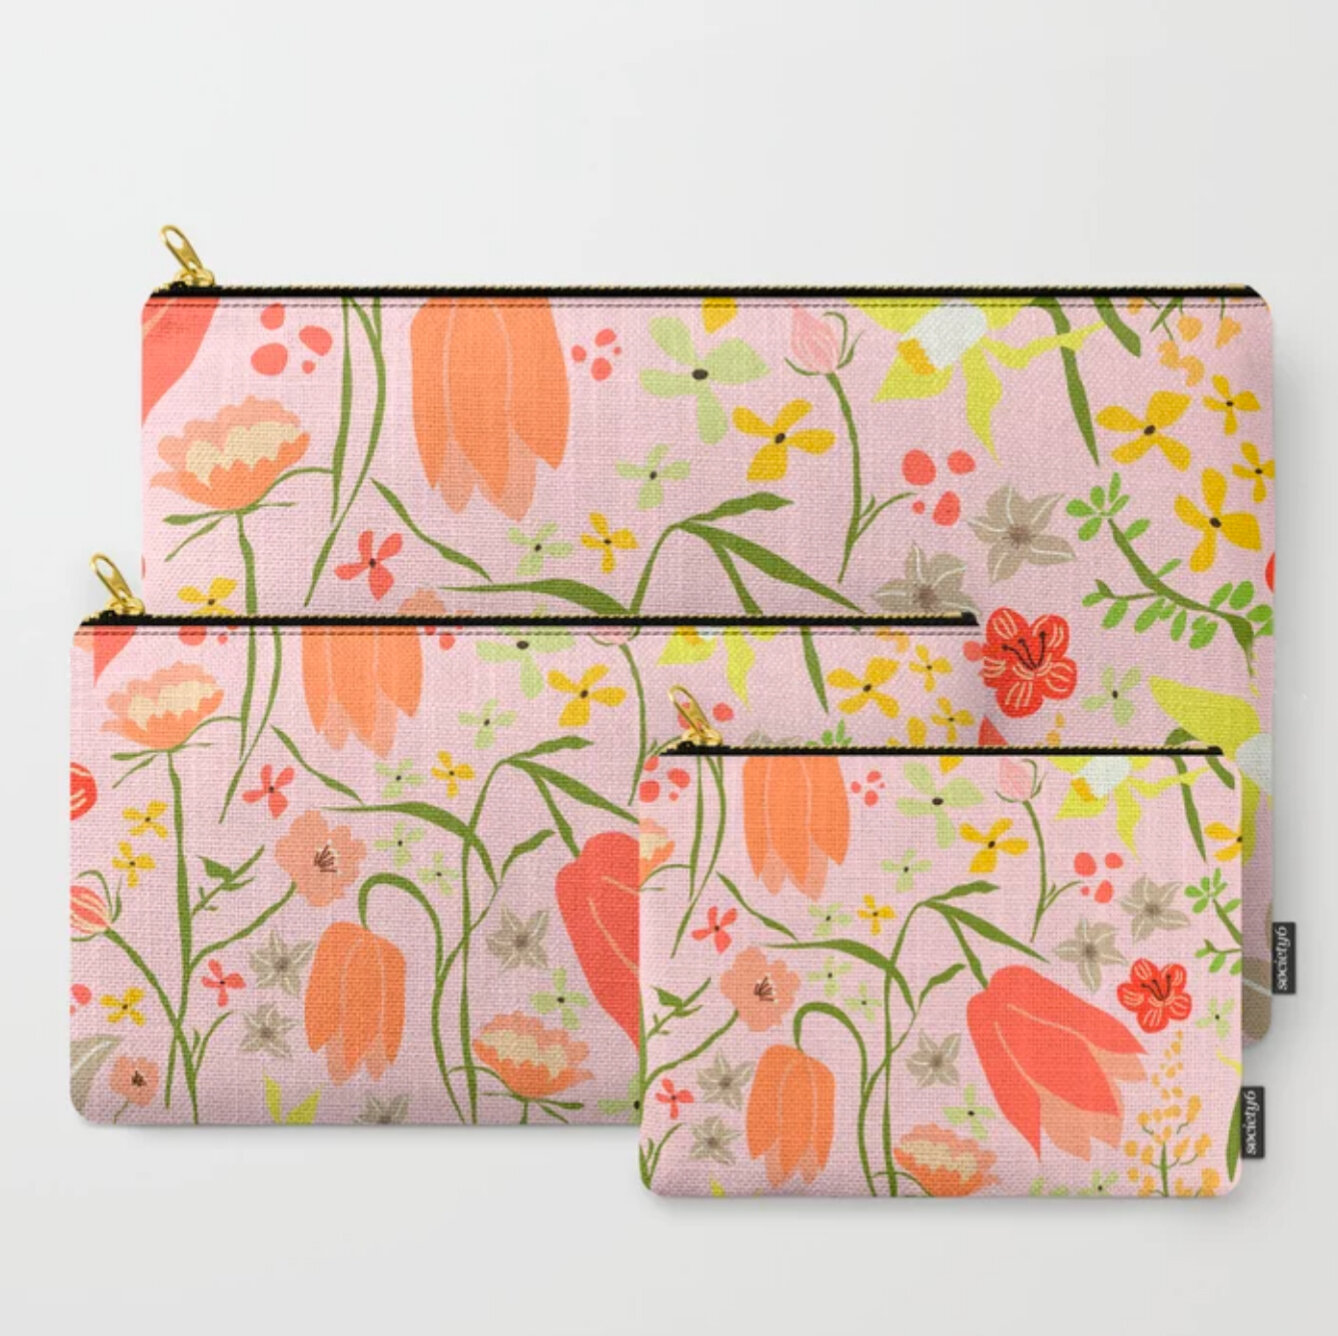 Wildflowers-pink-pouches-gingerdeverell.jpg